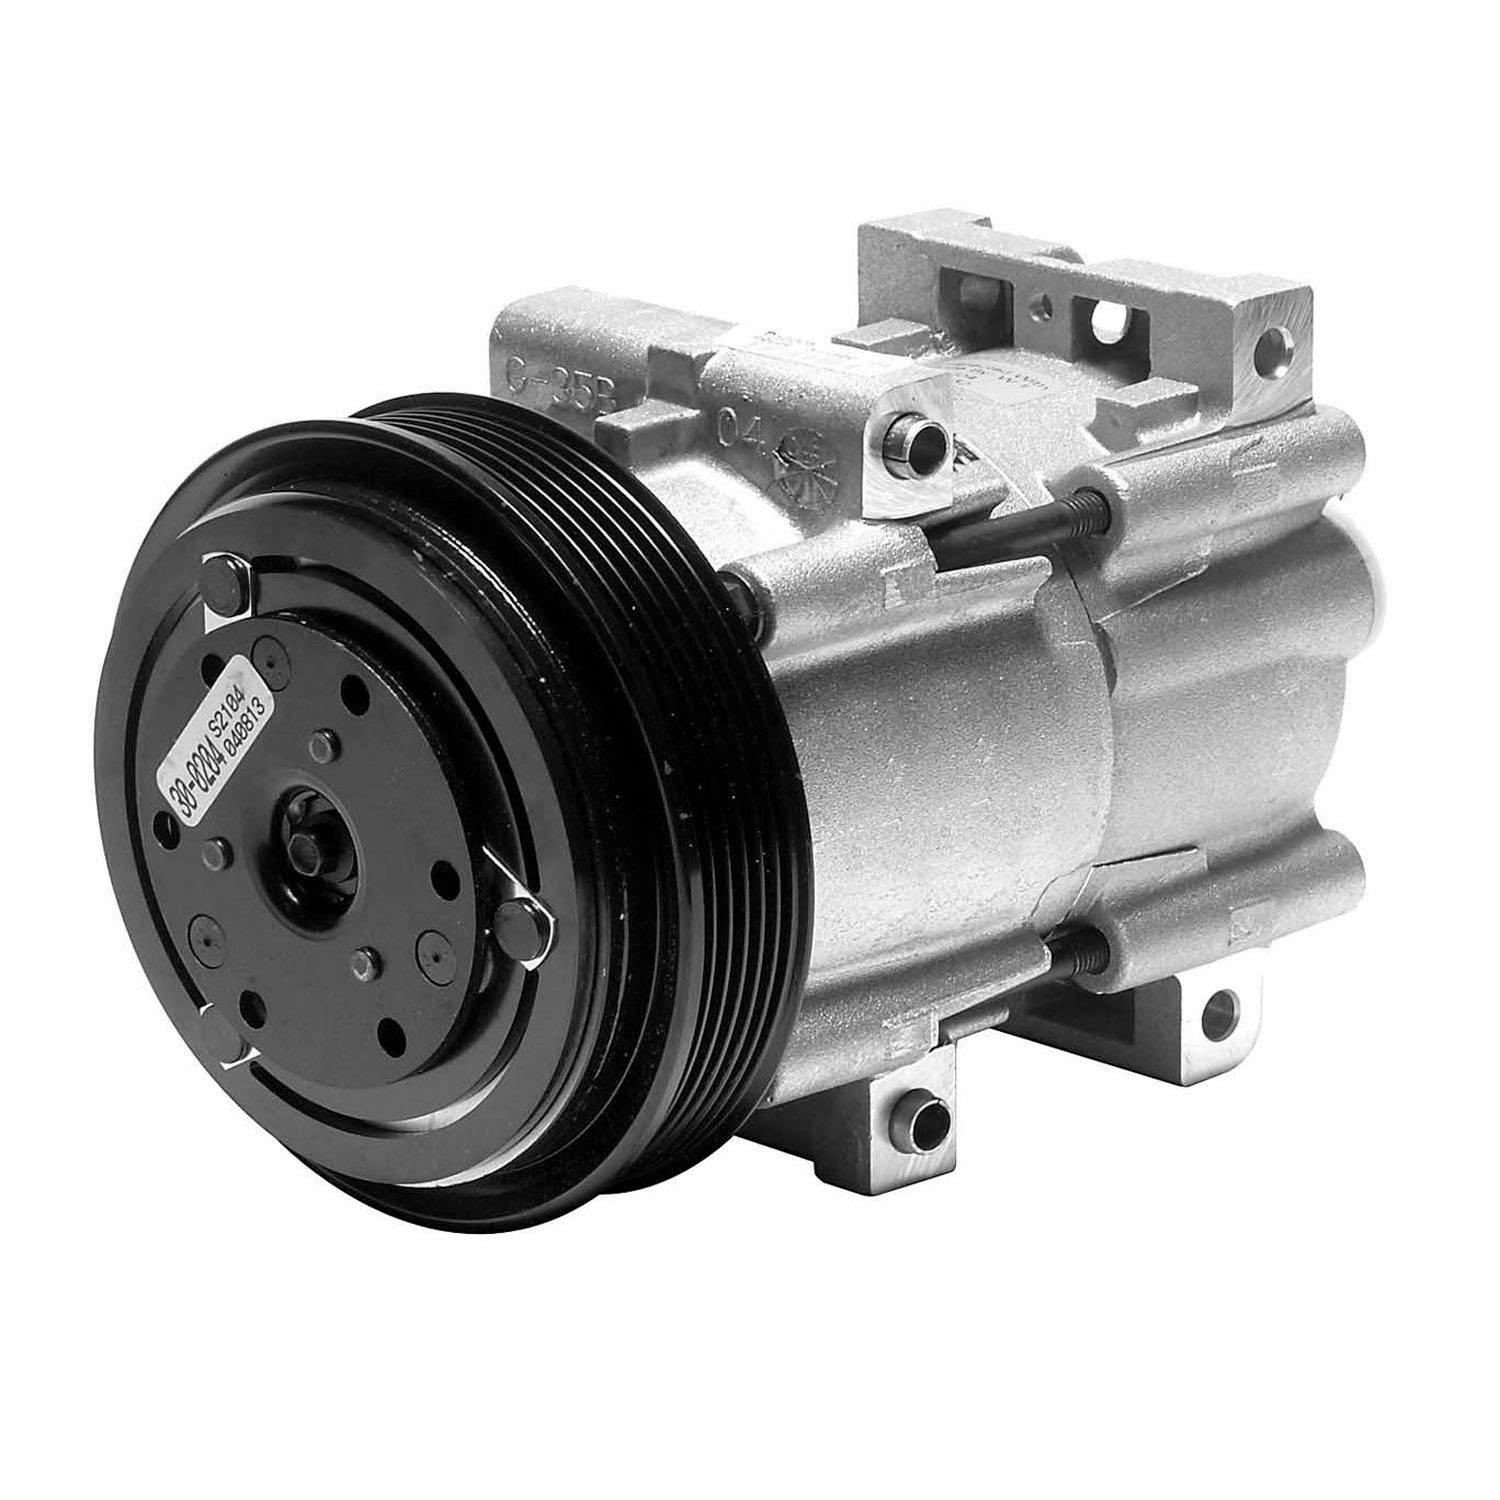 Denso 471-8105 New Compressor with Clutch